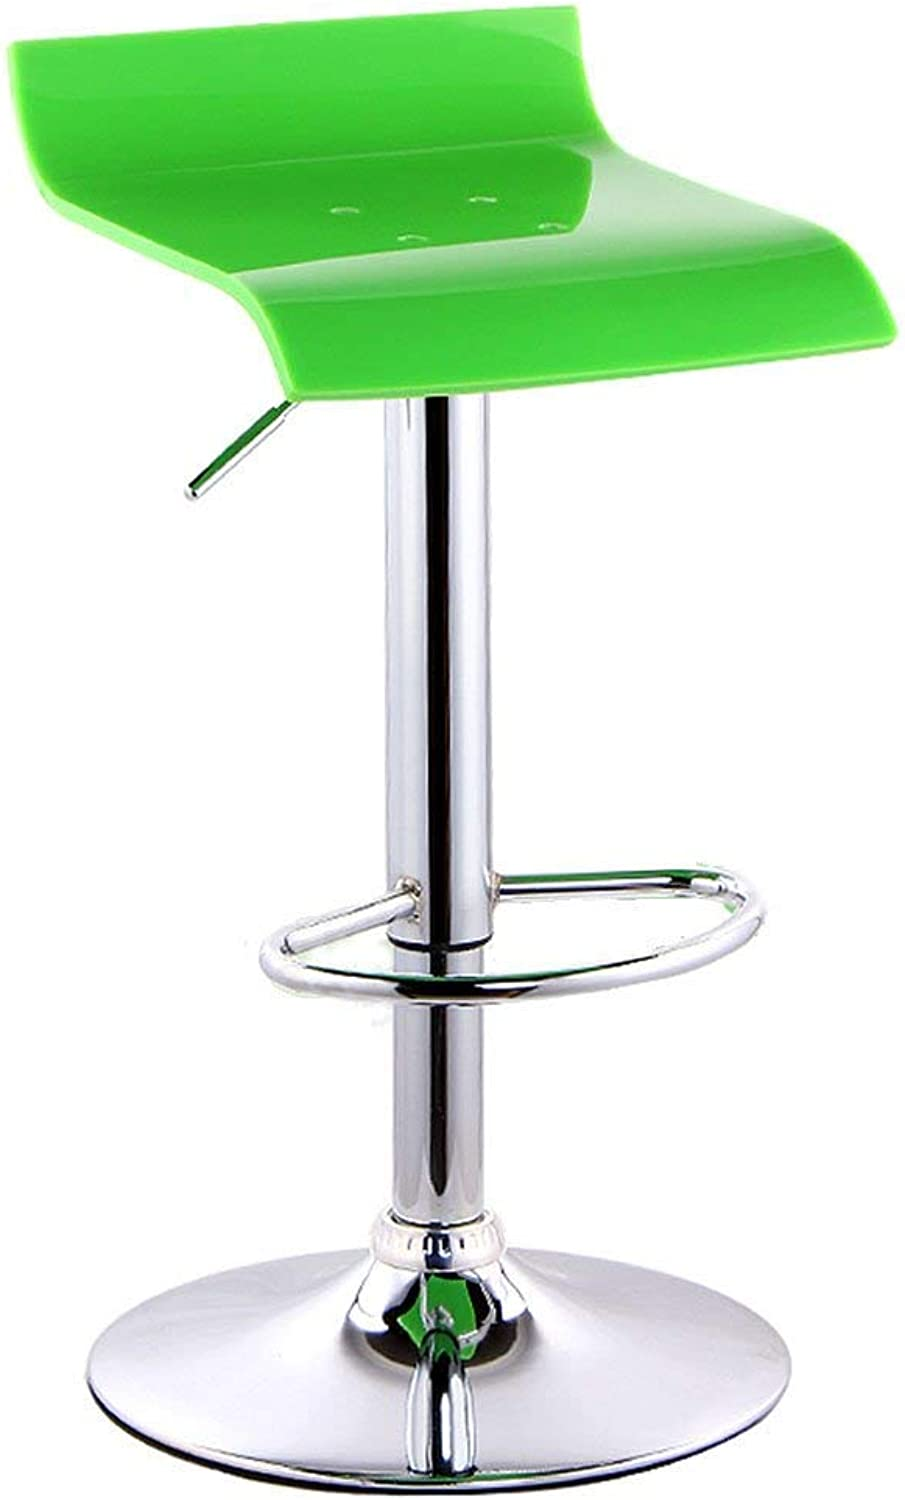 XQY Seat Chair-Bar Chair Square Acrylic Chair Surface Bar Chair Simple Lift Bar Chair Bar Household High Stool Reception Chair Base 38.5Cm -Sponge + Leatherette Solid Wood Chair Surface